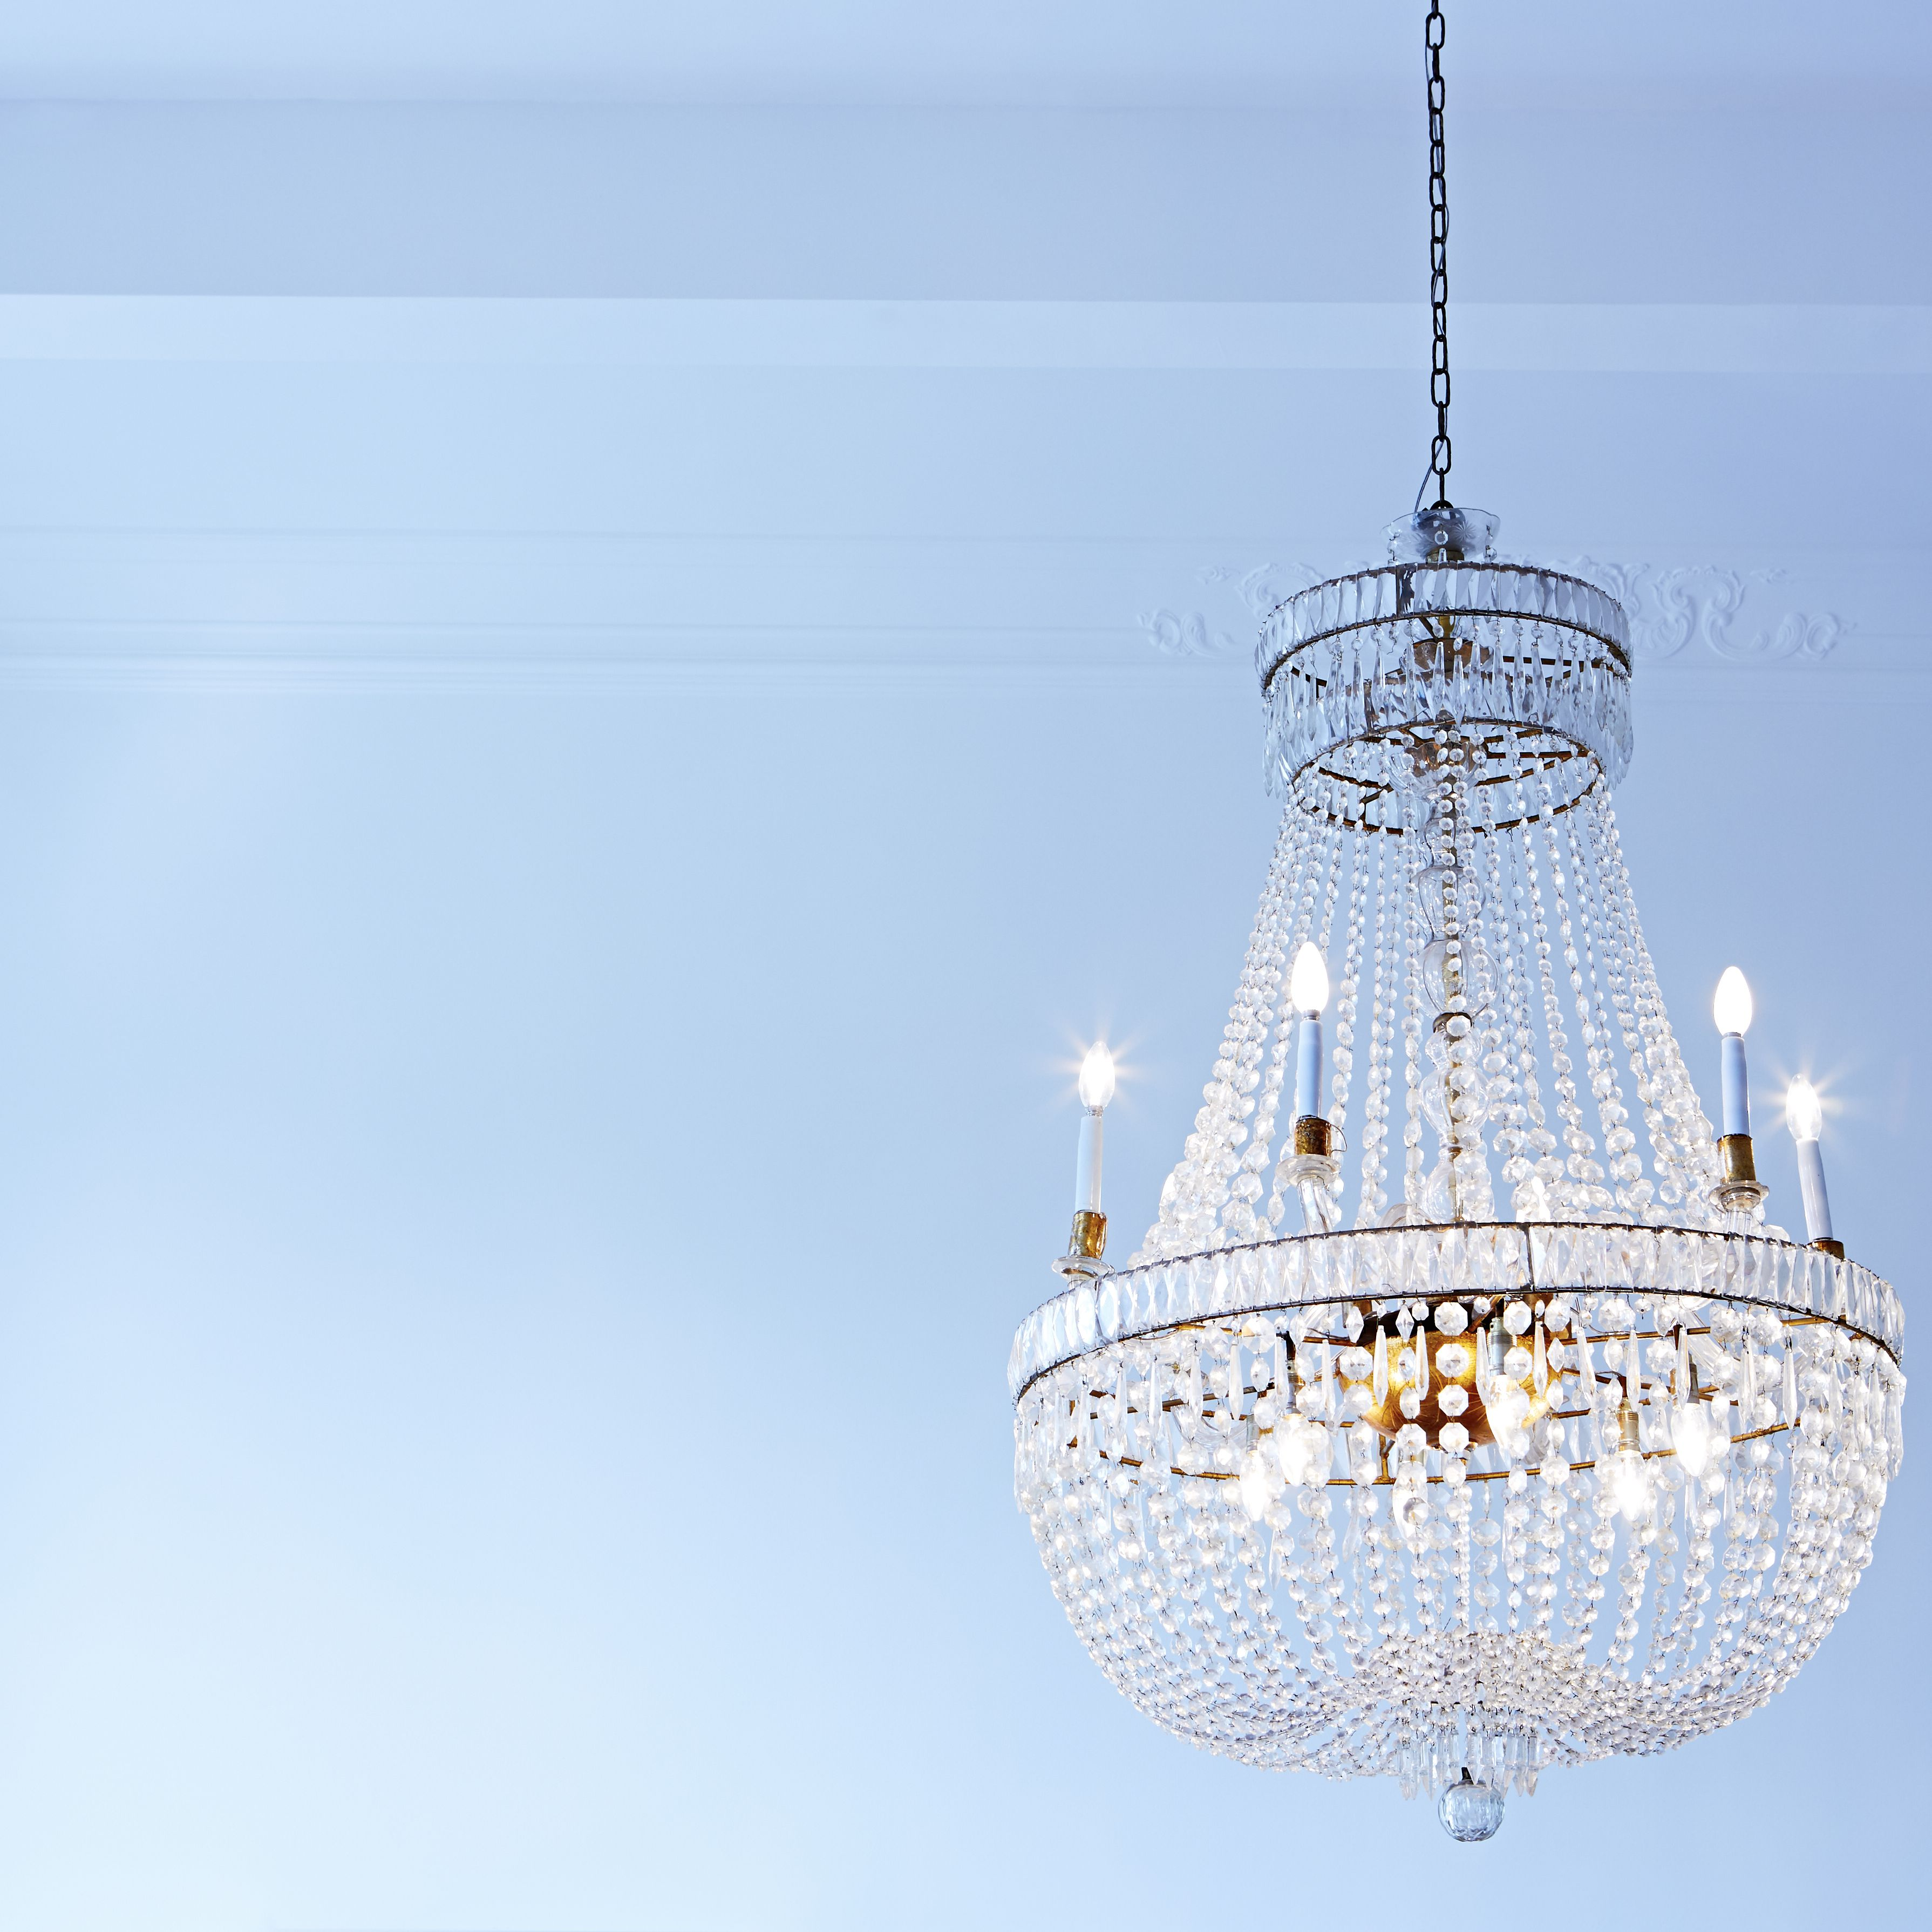 How To Determine The Right Chandelier Size For A Room,2 Bedroom House Designs Pictures In Kenya